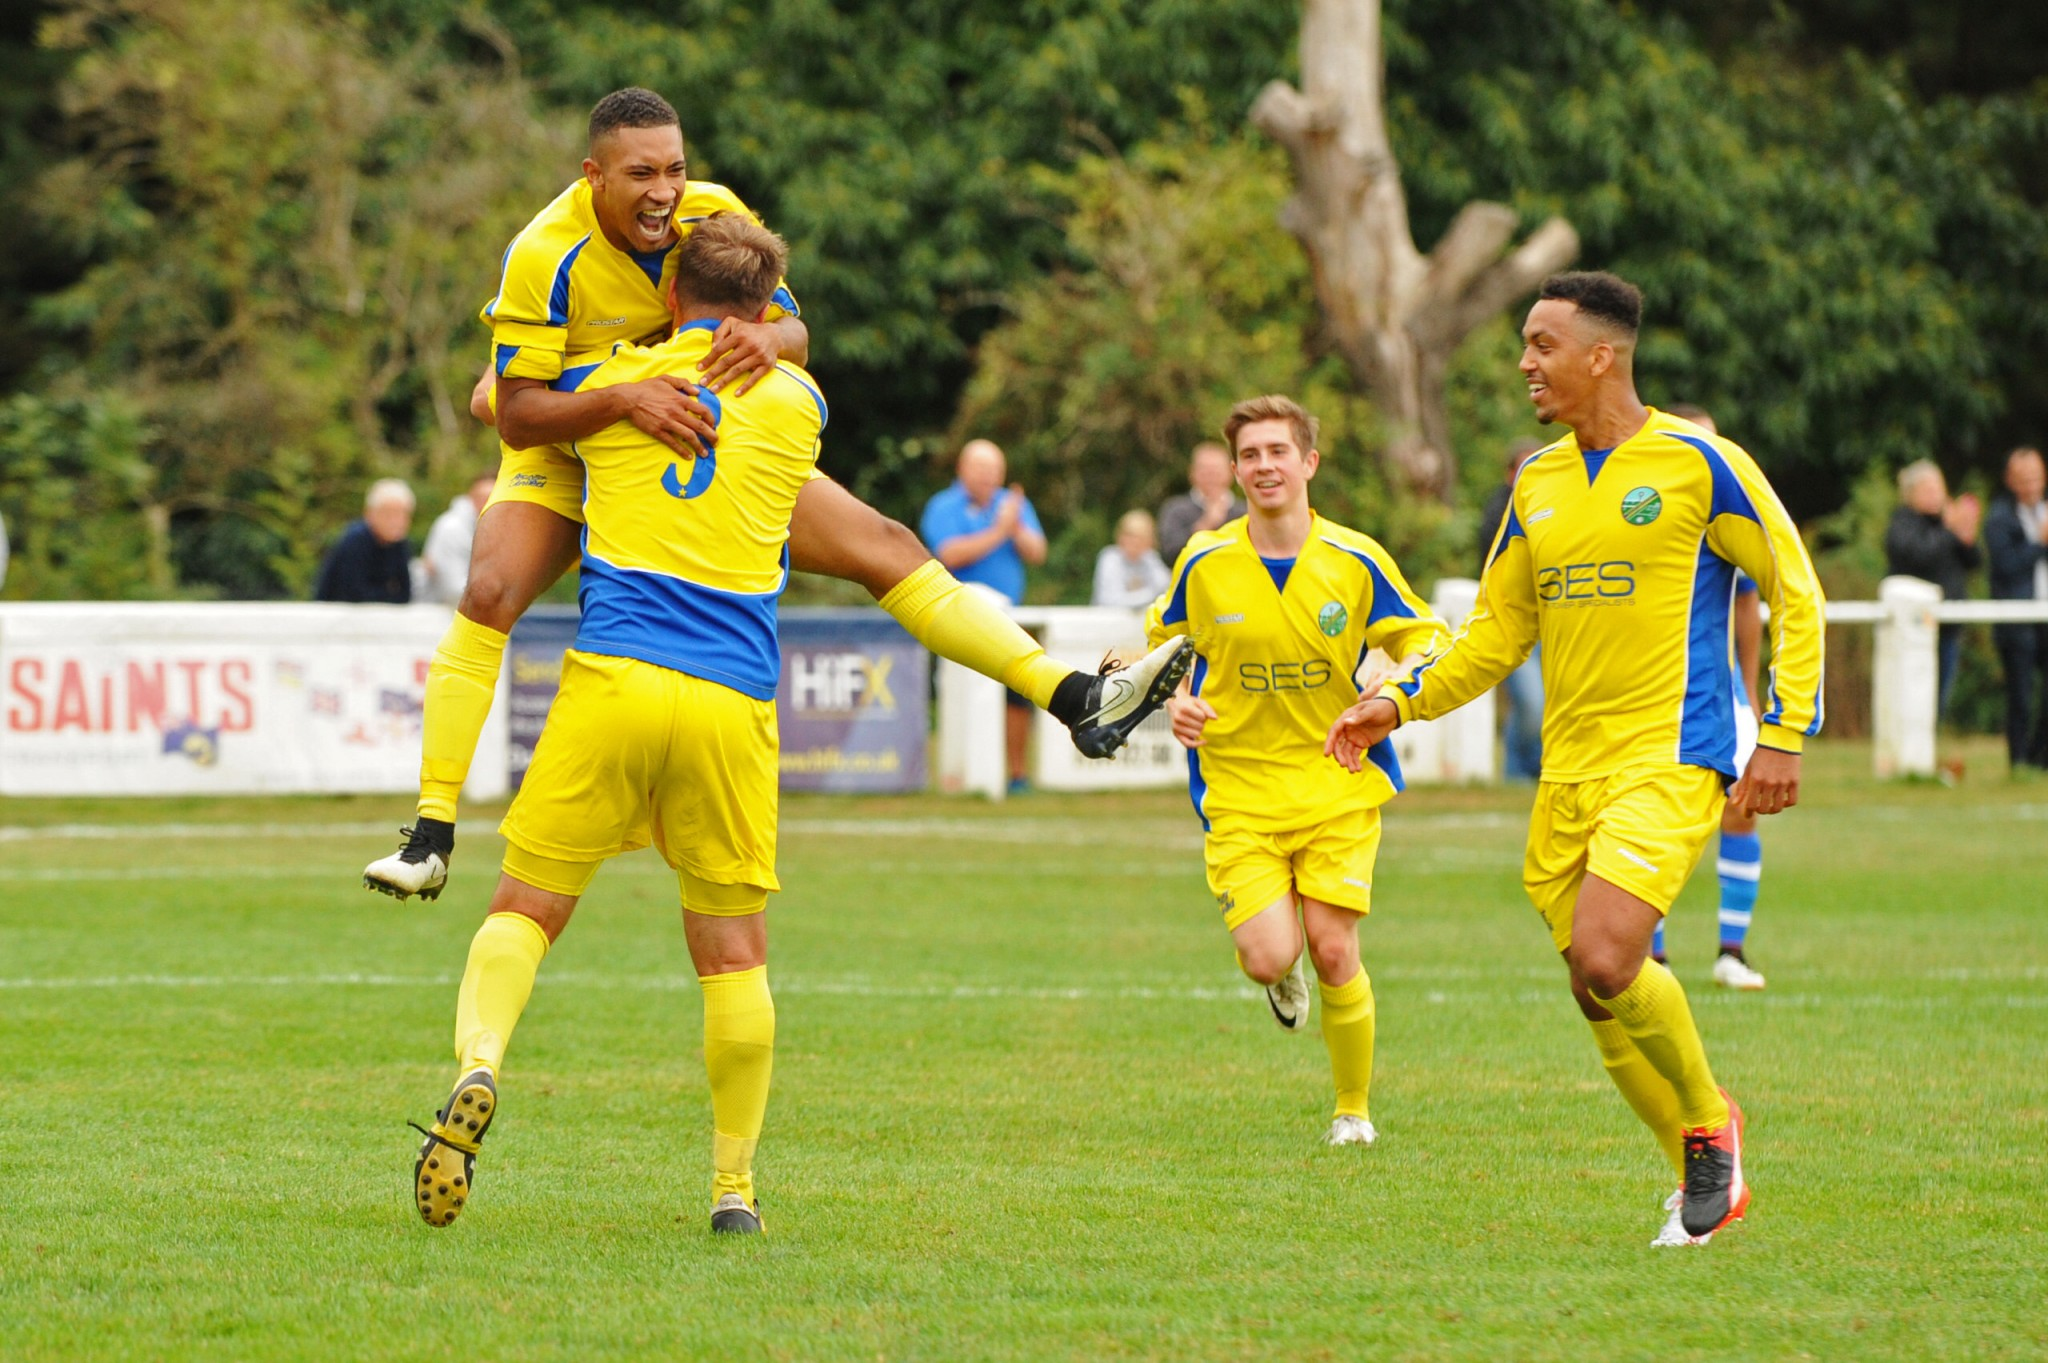 All the images from Ascot United's Emirates FA Cup tie with Tonbridge Angels